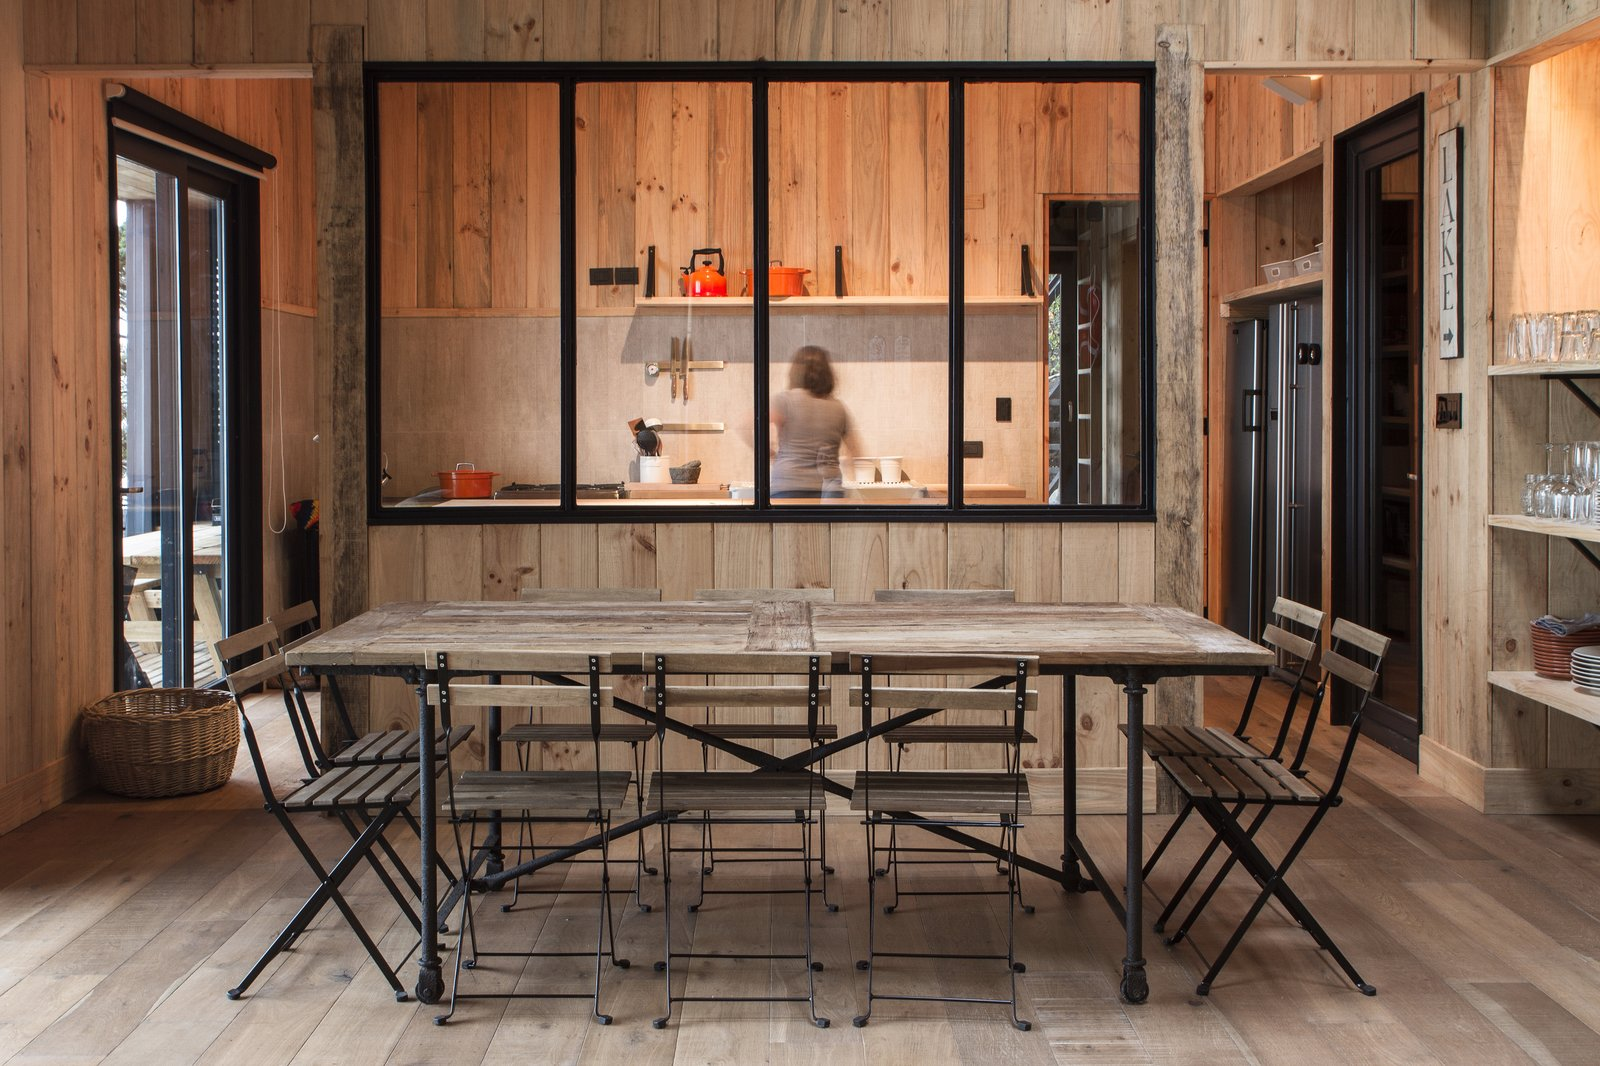 """Pine wood """"tejuelas,"""" or planks used for cladding and ceilings, wrap the entire interior in keeping with the Southern Chile regional vernacular. Its muted tones speak to the surrounding environment as well.  Casa Lago Todos los Santos by Dwell"""